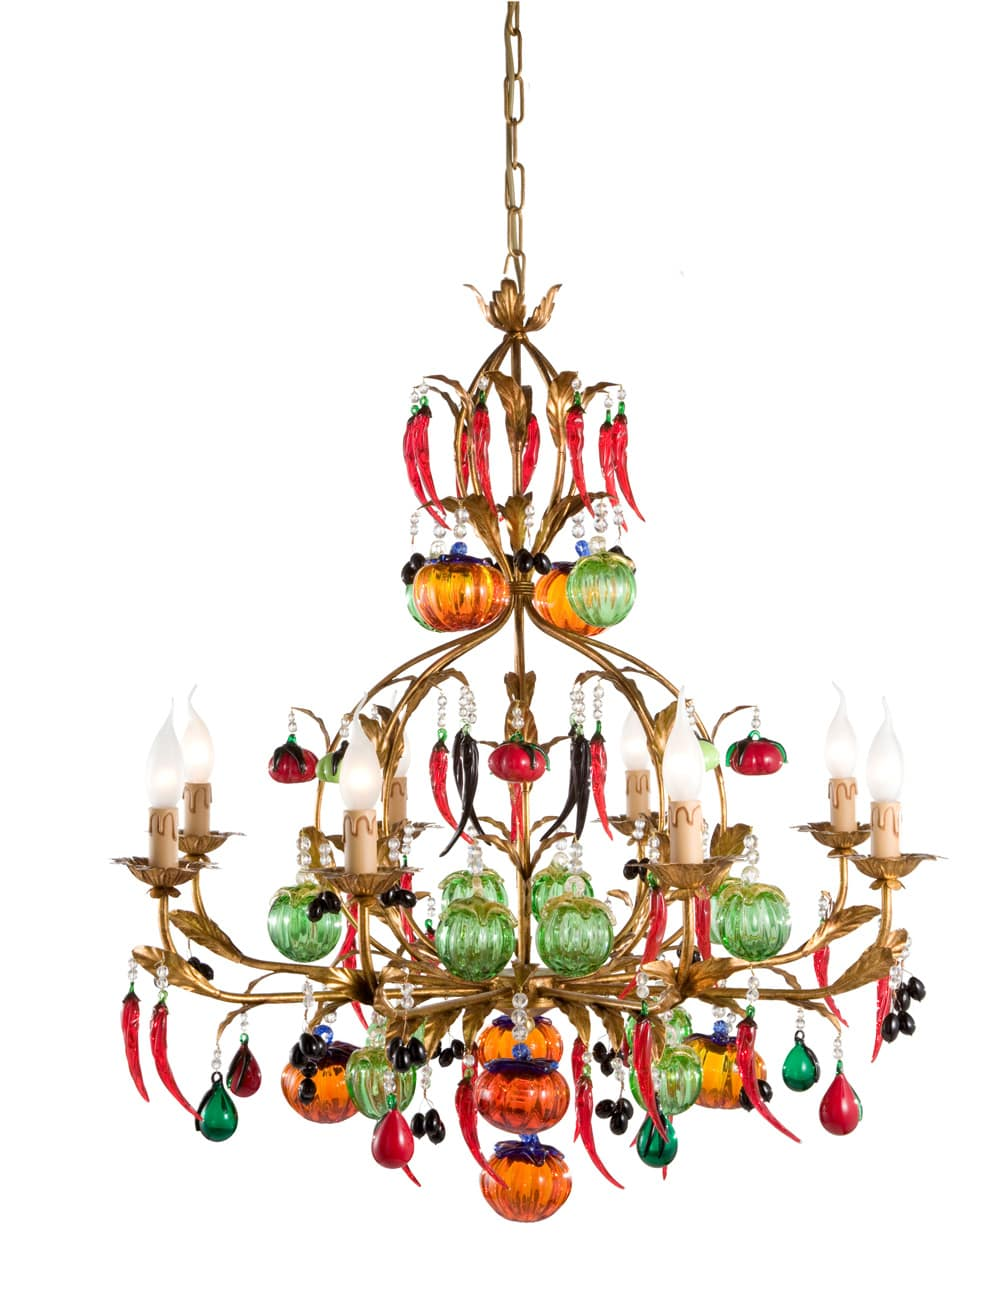 decorative-lighting-chandeliers-3